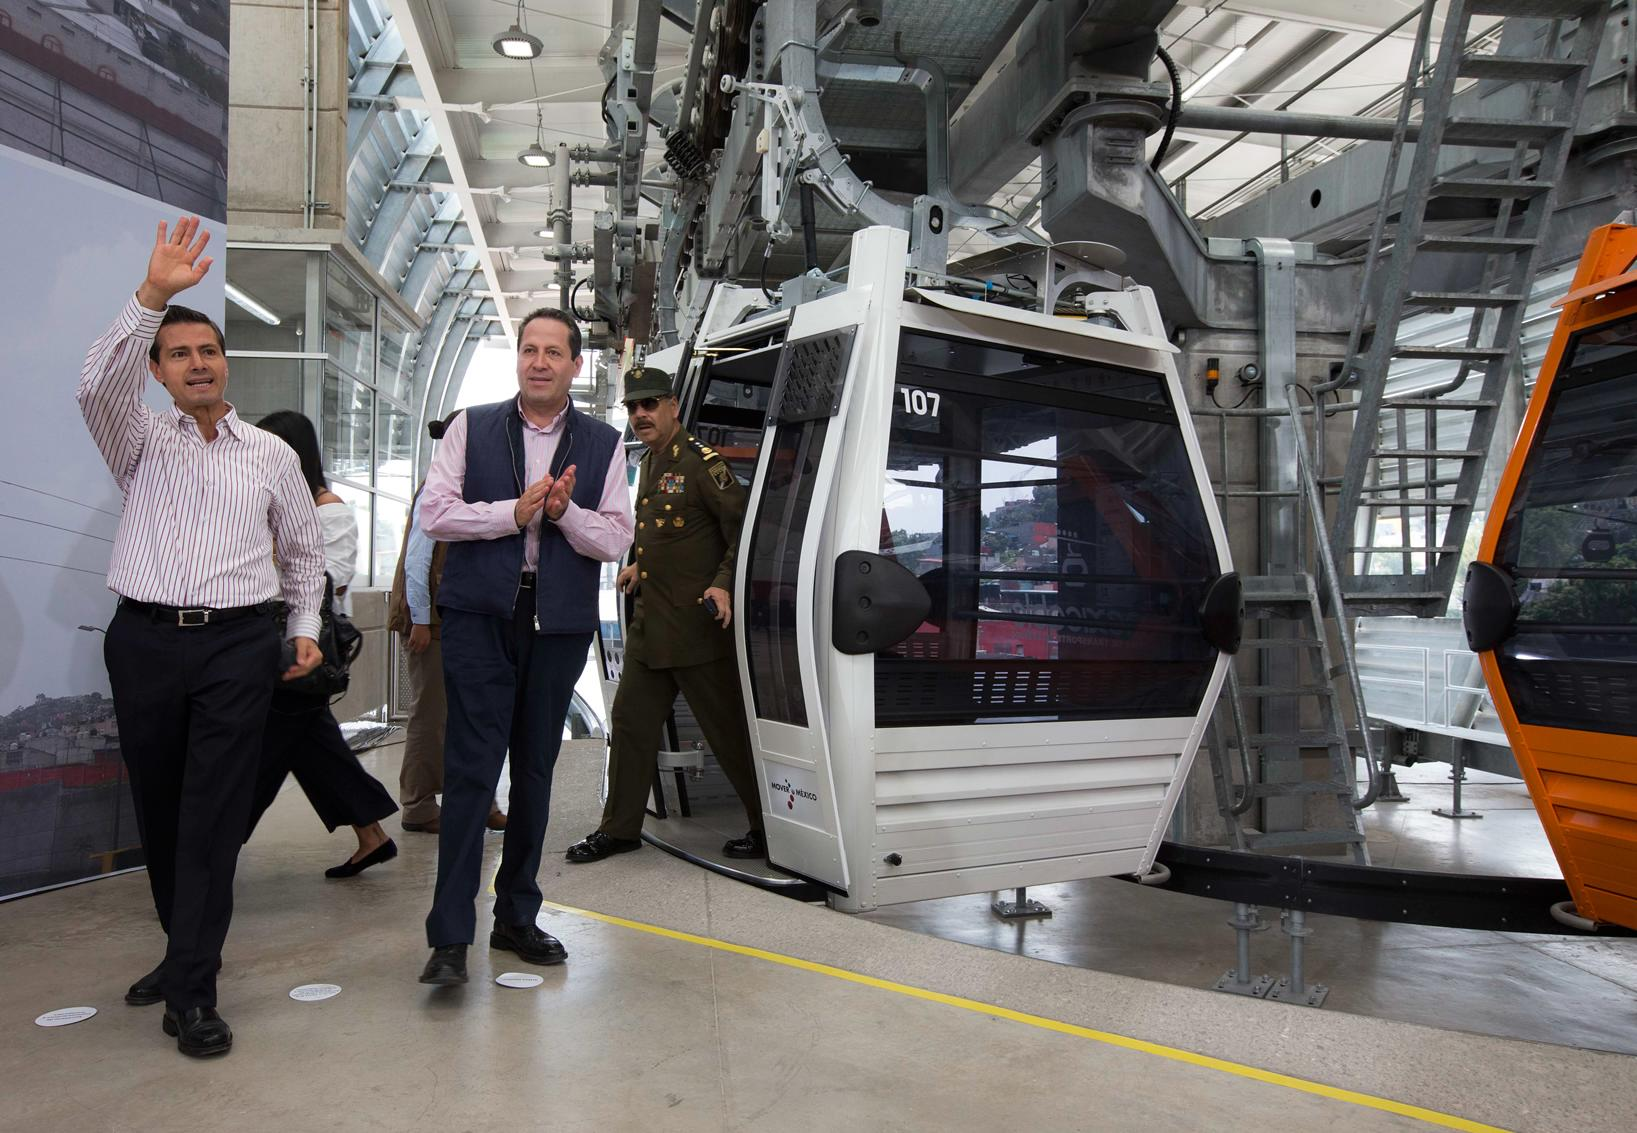 The president inaugurated the Mexicable Ecatepec Public Cable Car Transportation System.